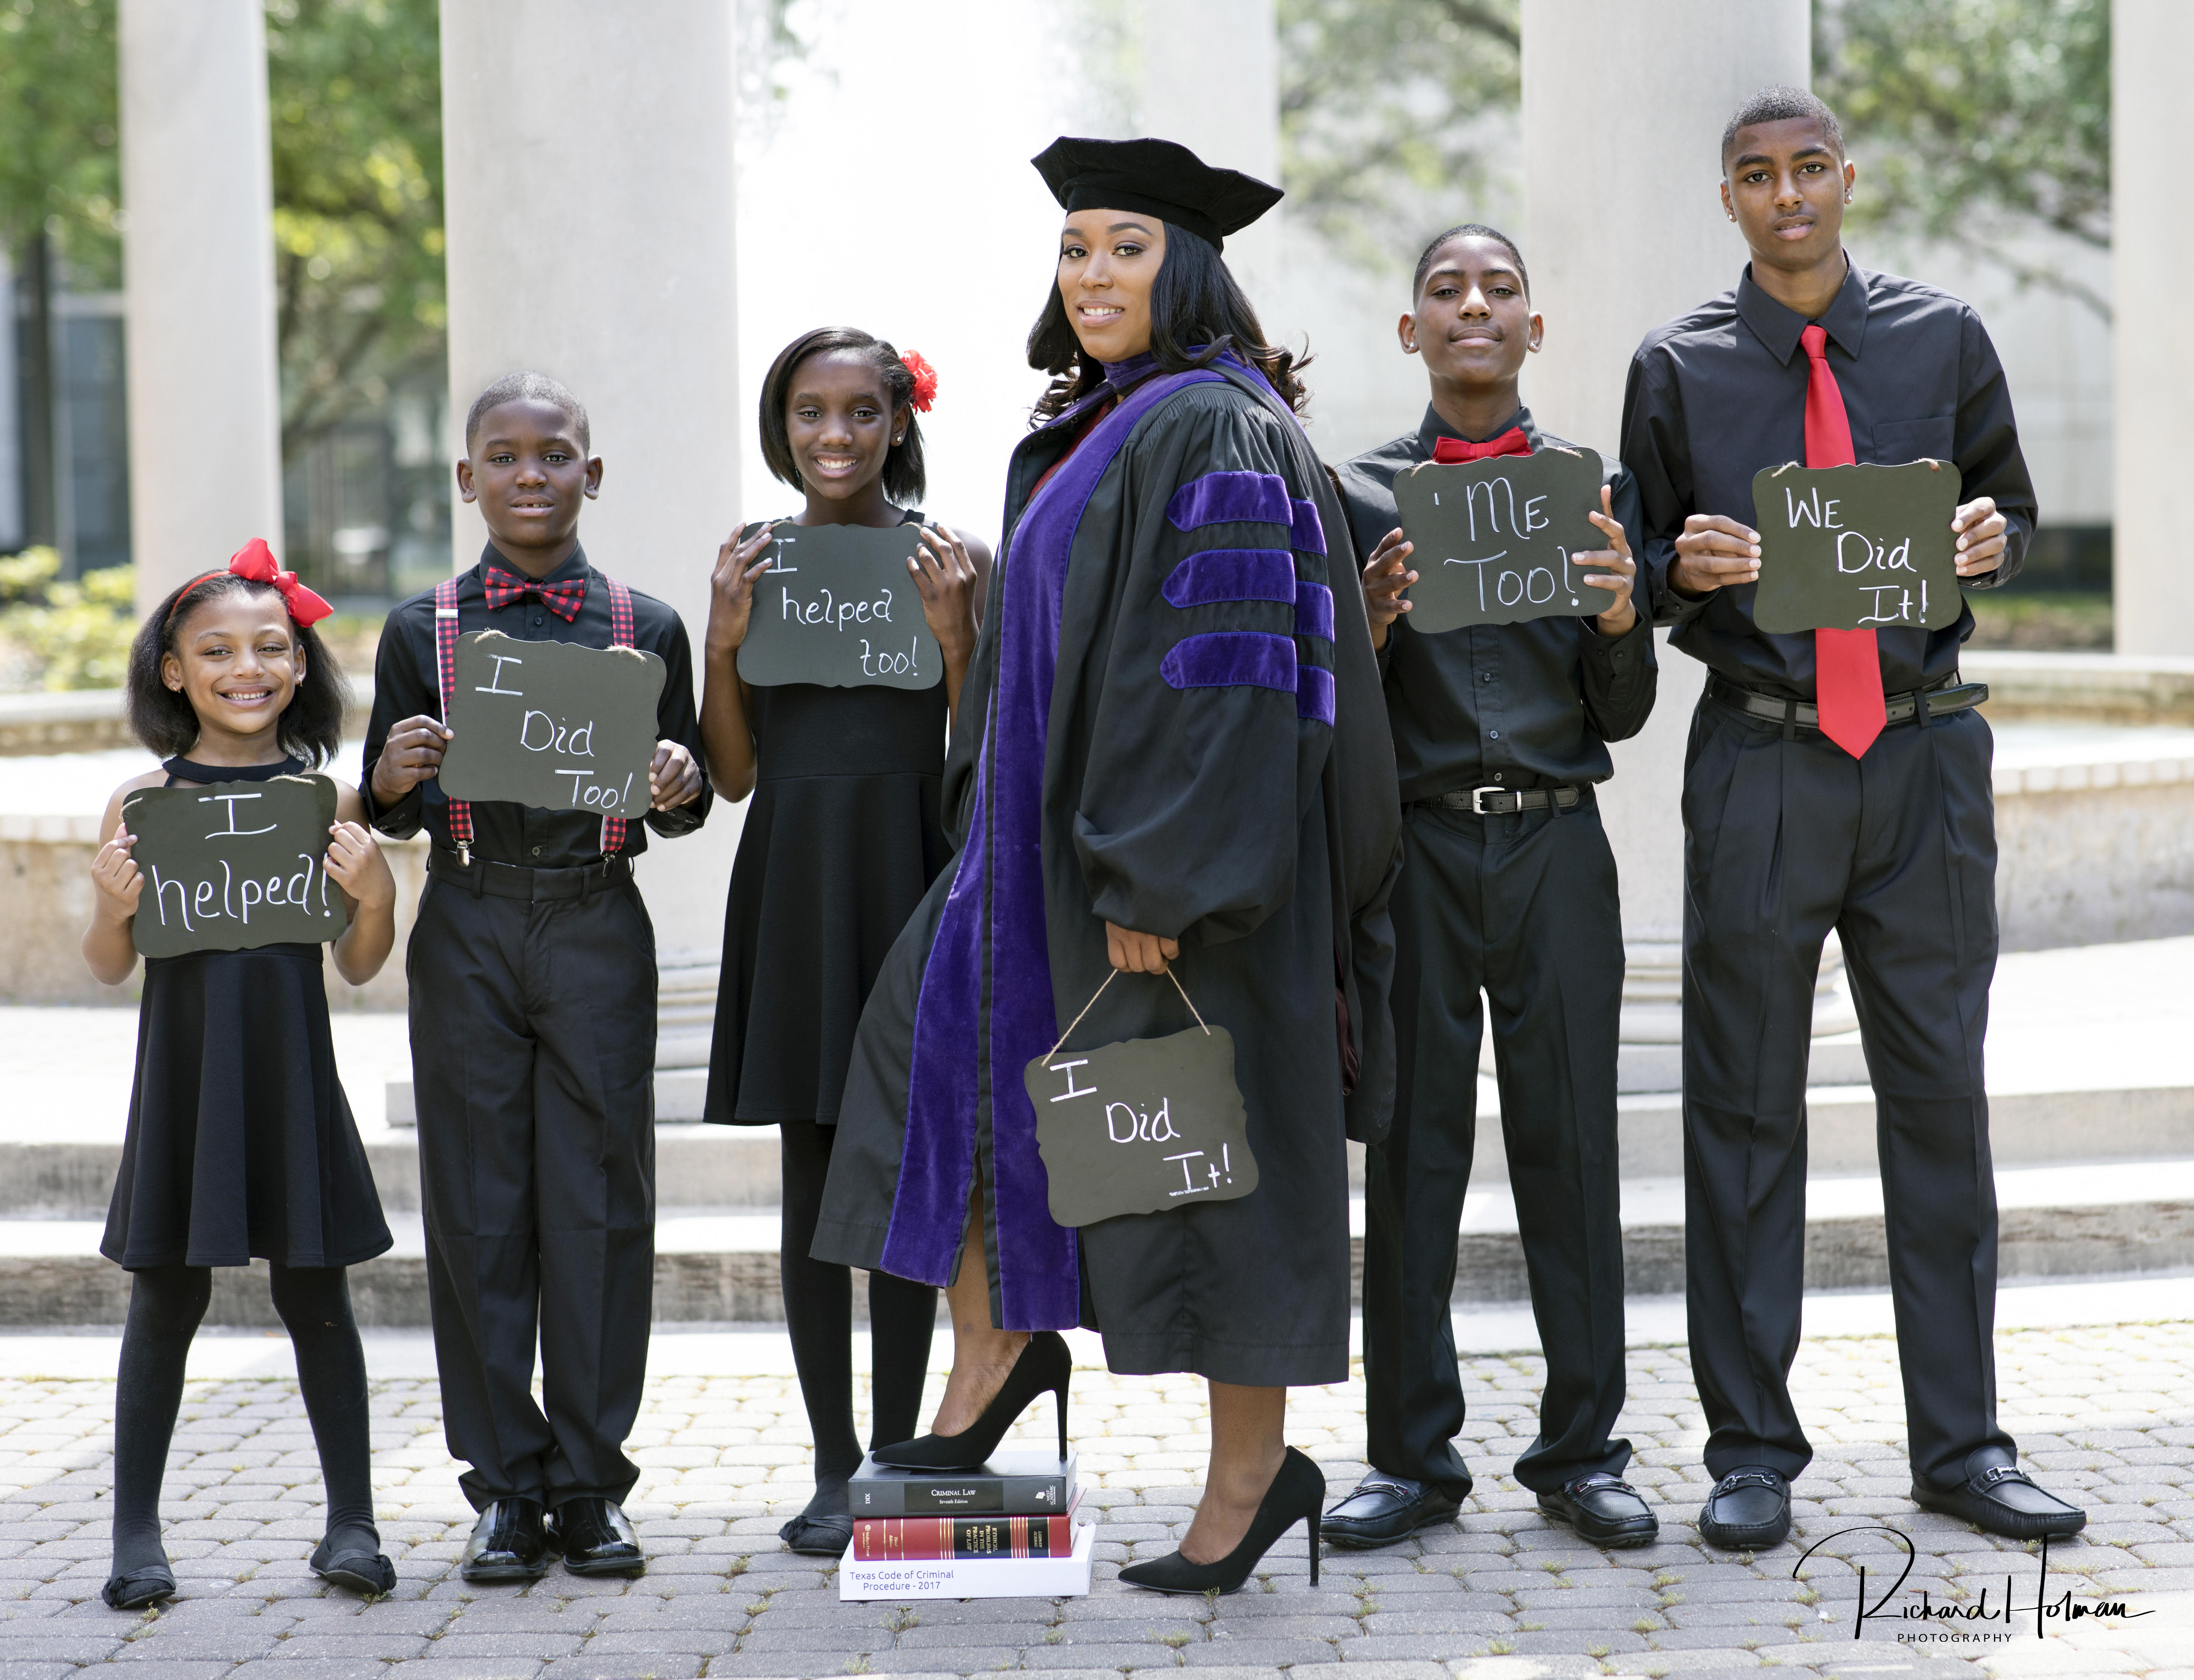 Ieshia Champs, Single Mother of 5, to Graduate Magna Cum Laude From Texas Southern University's Thurgood Marshall School of Law